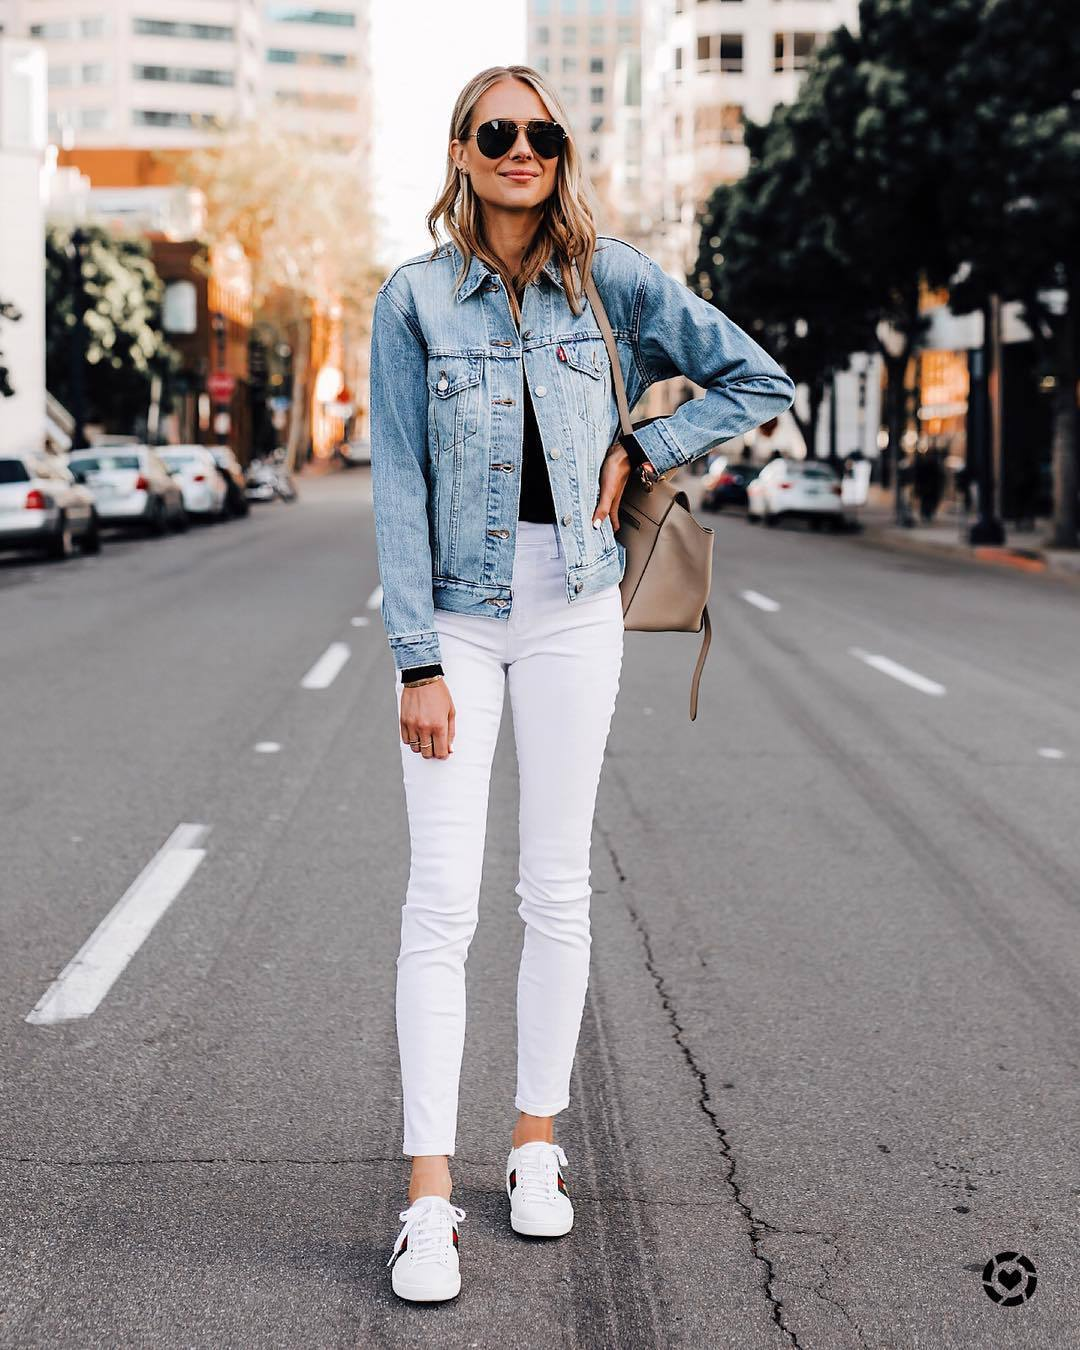 jacket denim jacket white jeans skinny jeans white sneakers black t-shirt shoulder bag